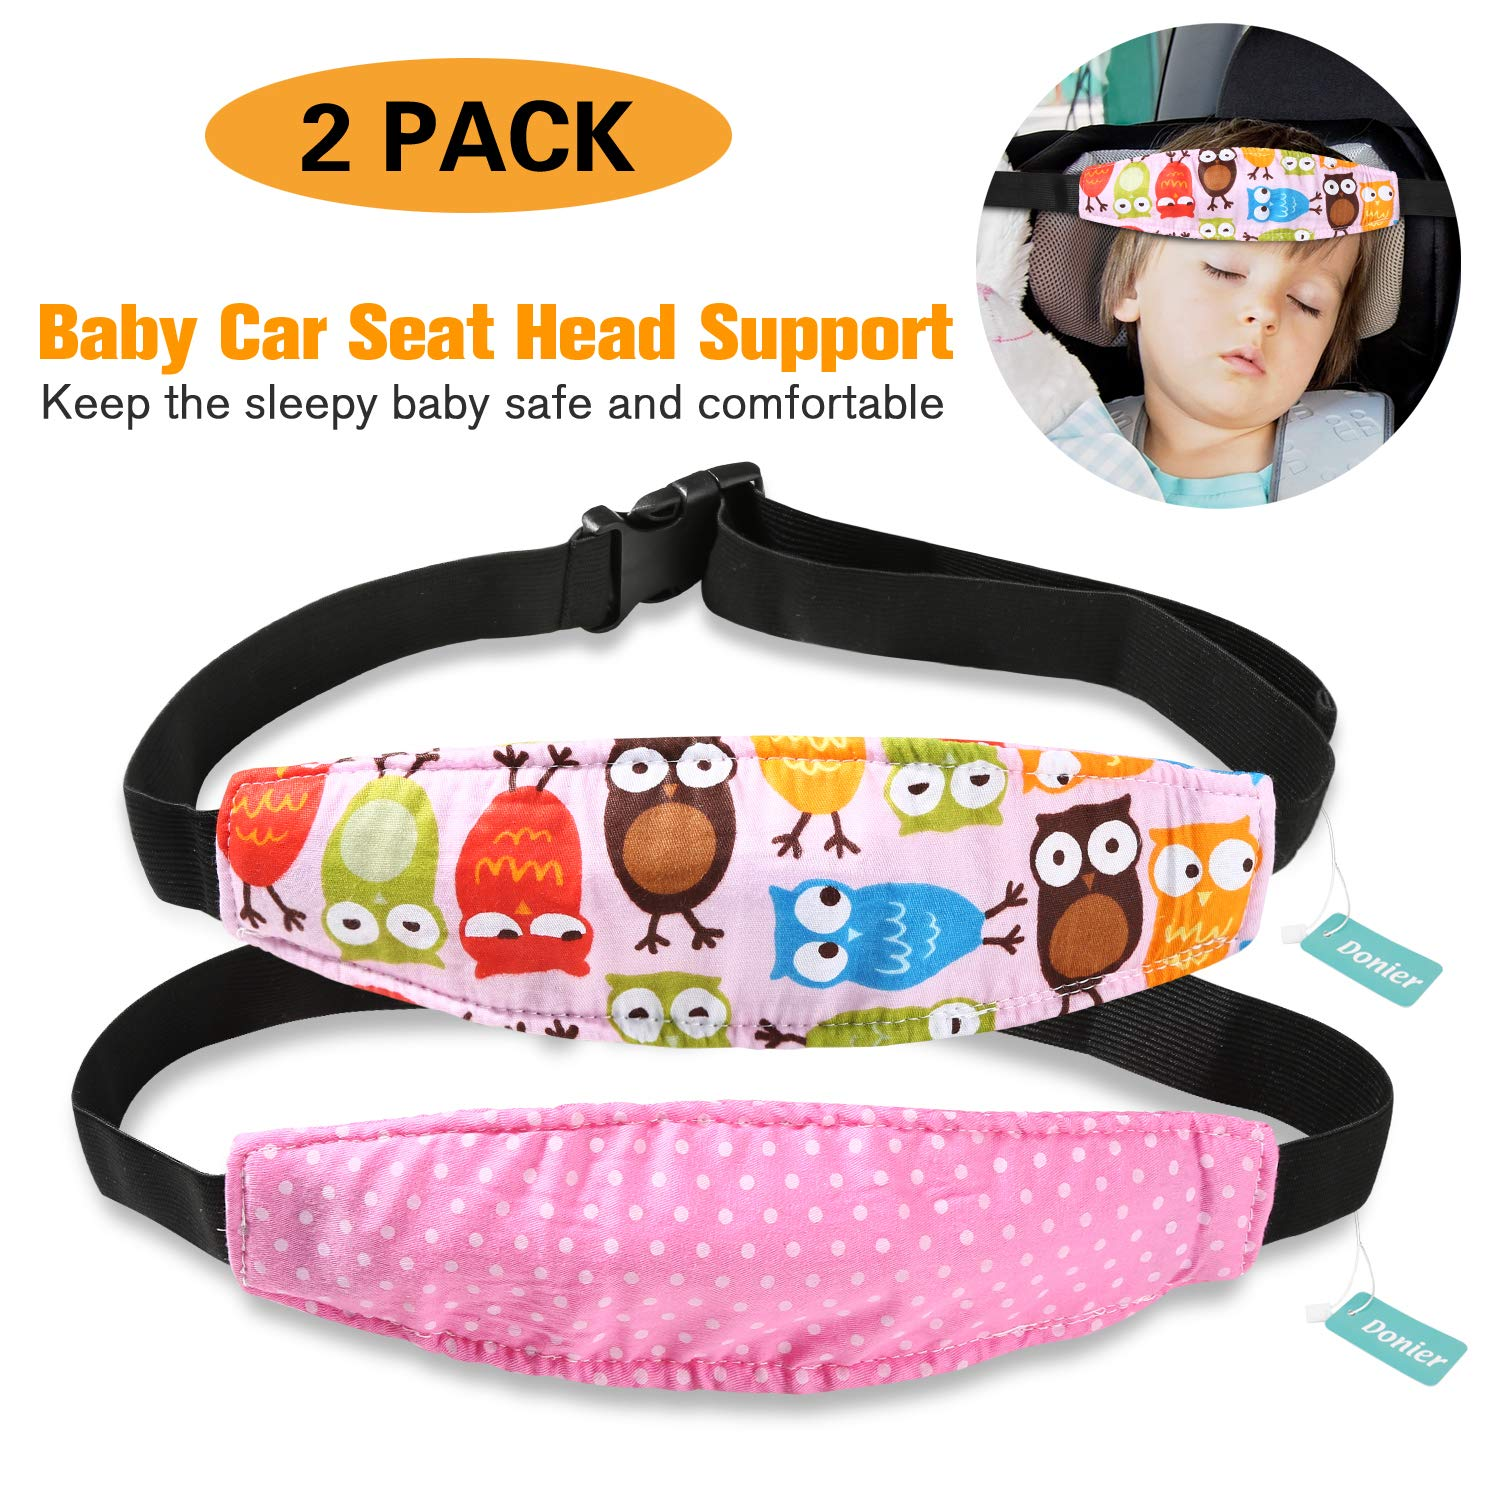 2 Packs Toddler Car Seat Neck Relief and Head Support, Pillow Support Head Band Easy Installation On Most Convertible Seats and Safety to Babies and Kids(Owls) Donier